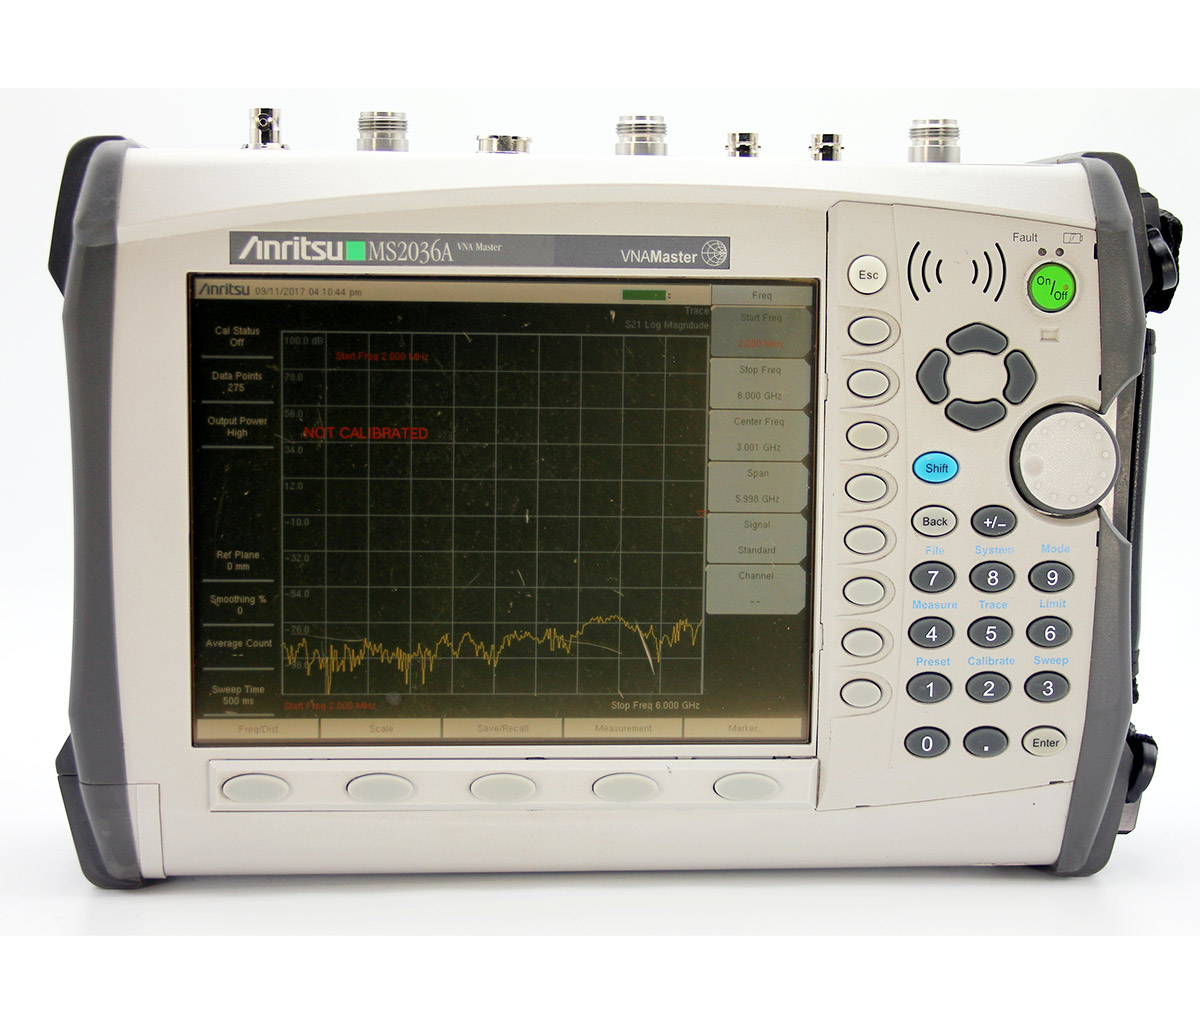 Anritsu MS2036A for Lease, Rent, or Buy | TRS-RenTelco